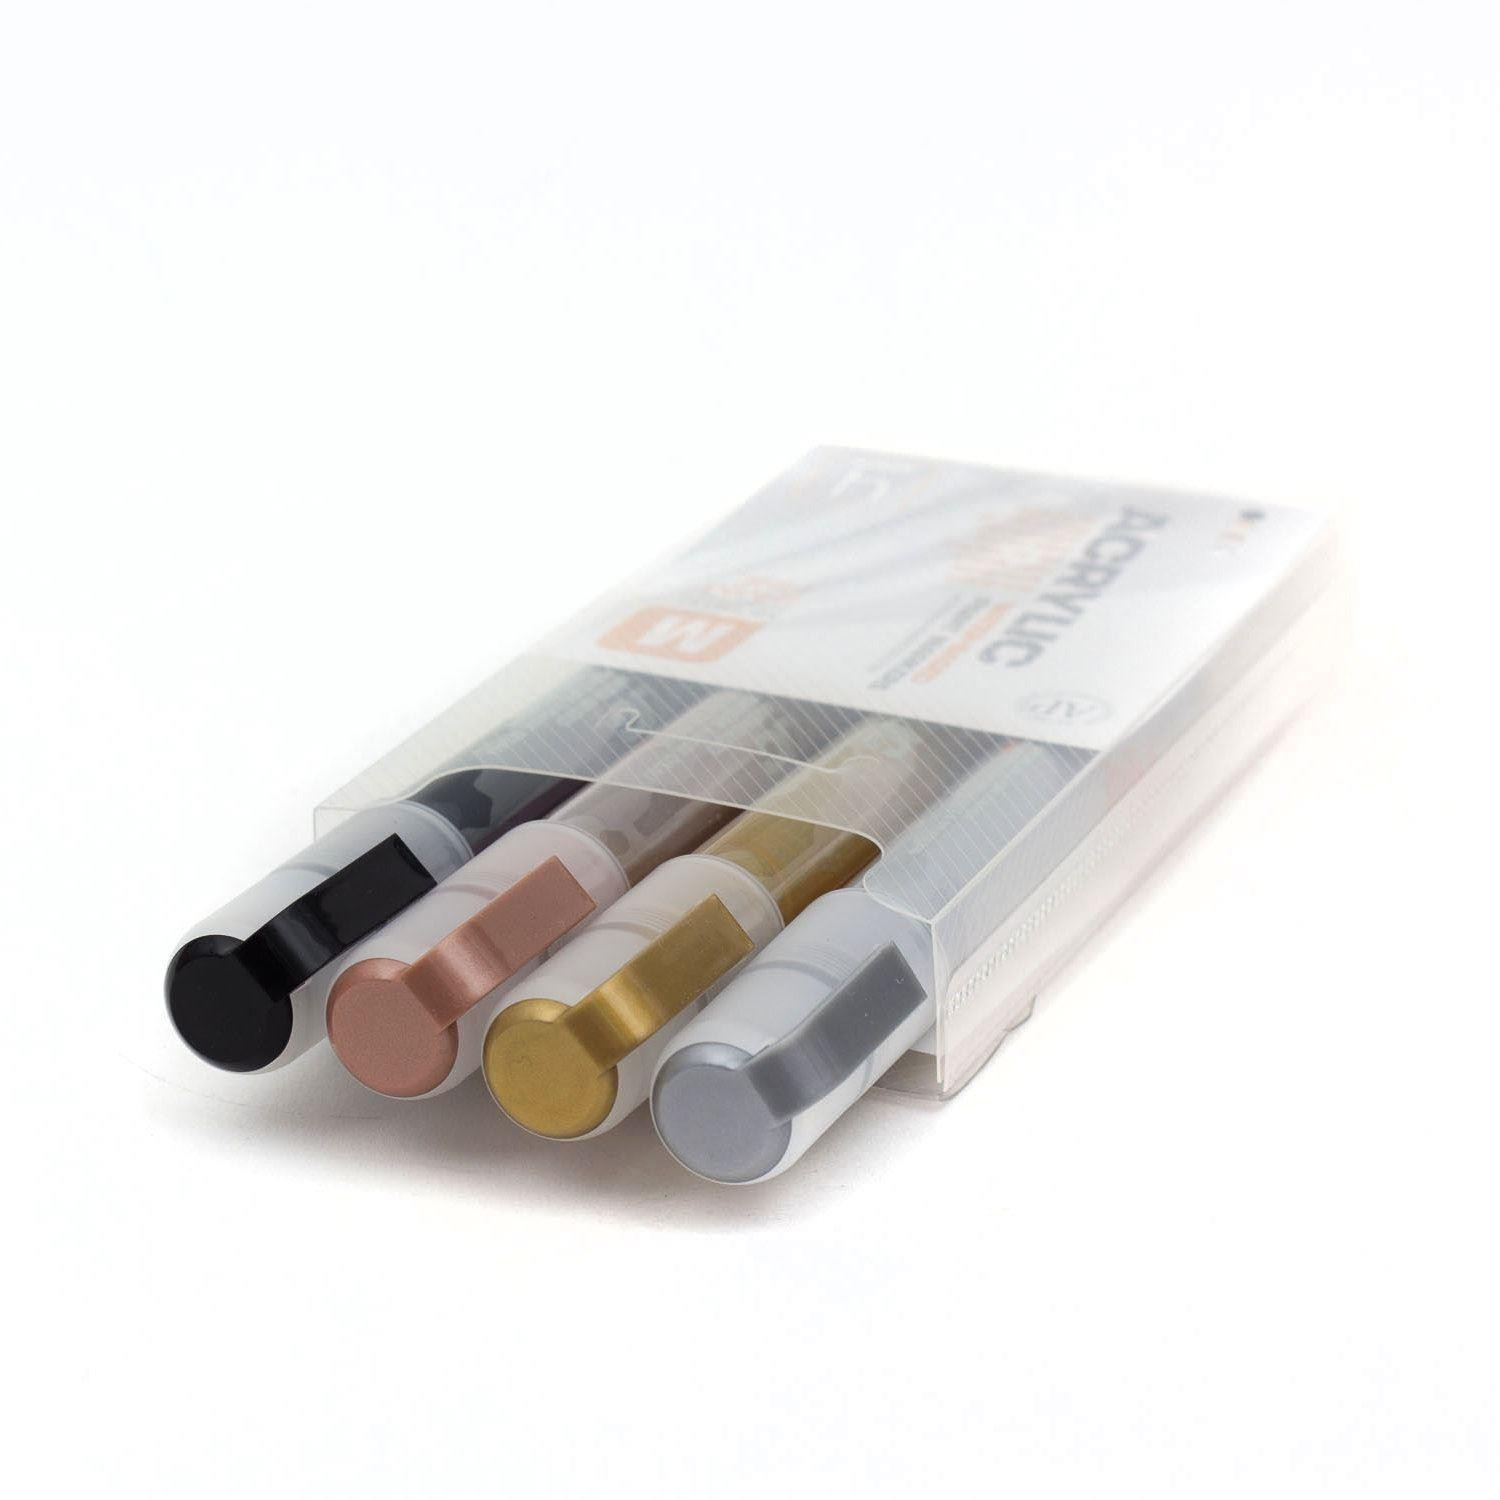 Montana acrylic paint marker pen sets